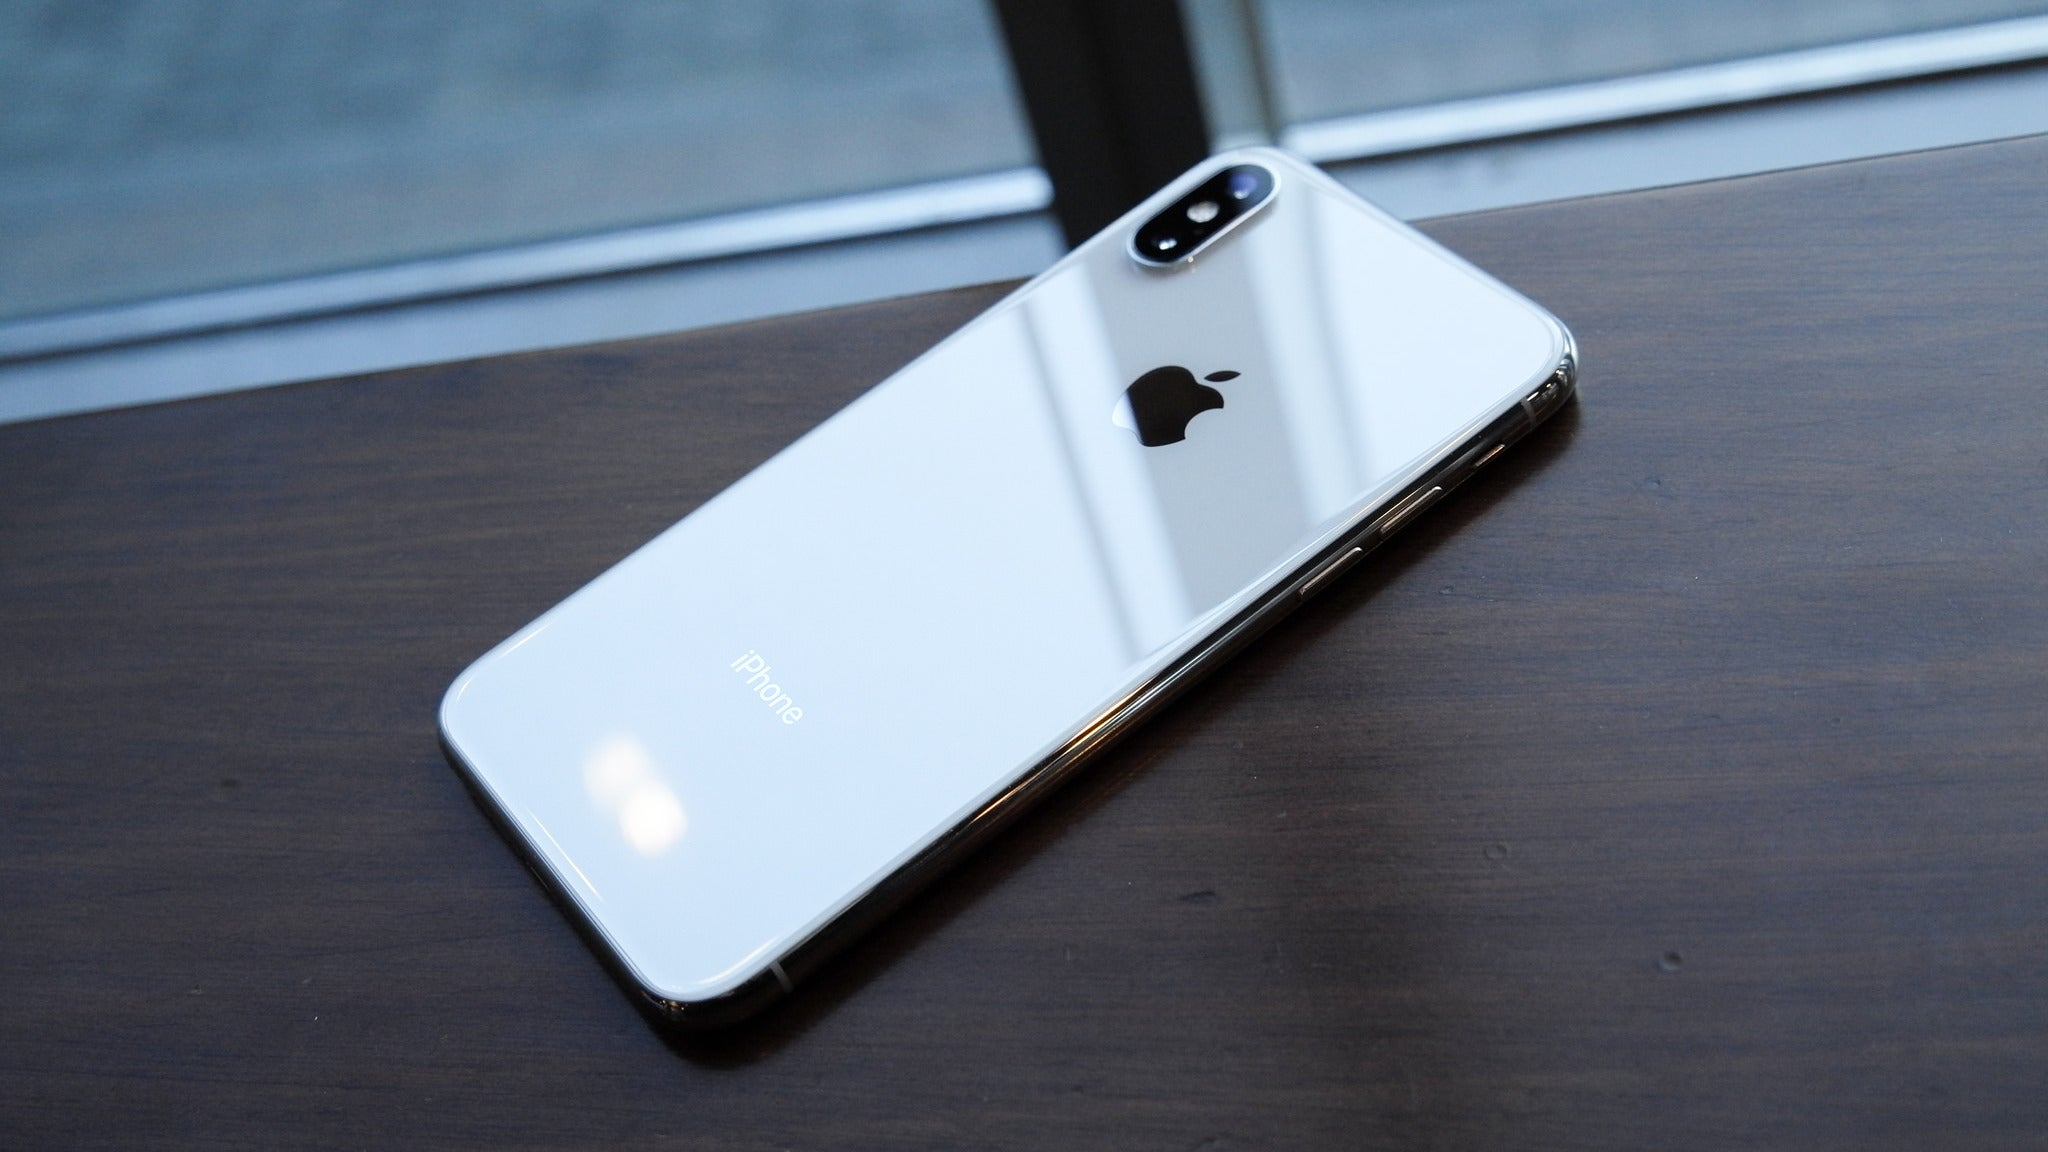 What Annoys You Most About Apple Products?